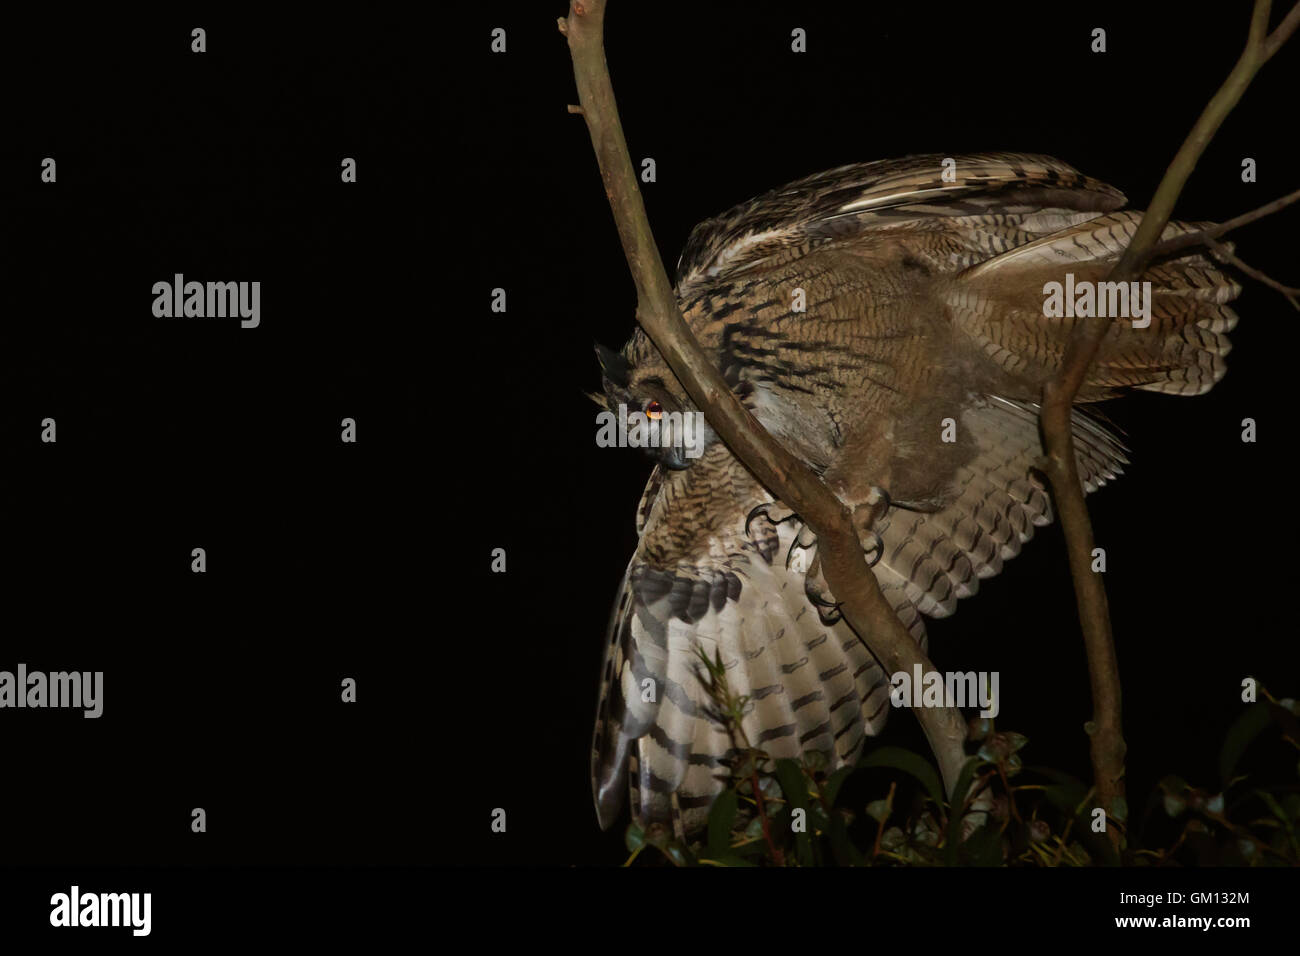 Juvenile Eurasian eagle-owl at night in a branch of an eucalyptus tree and losing balance - Stock Image